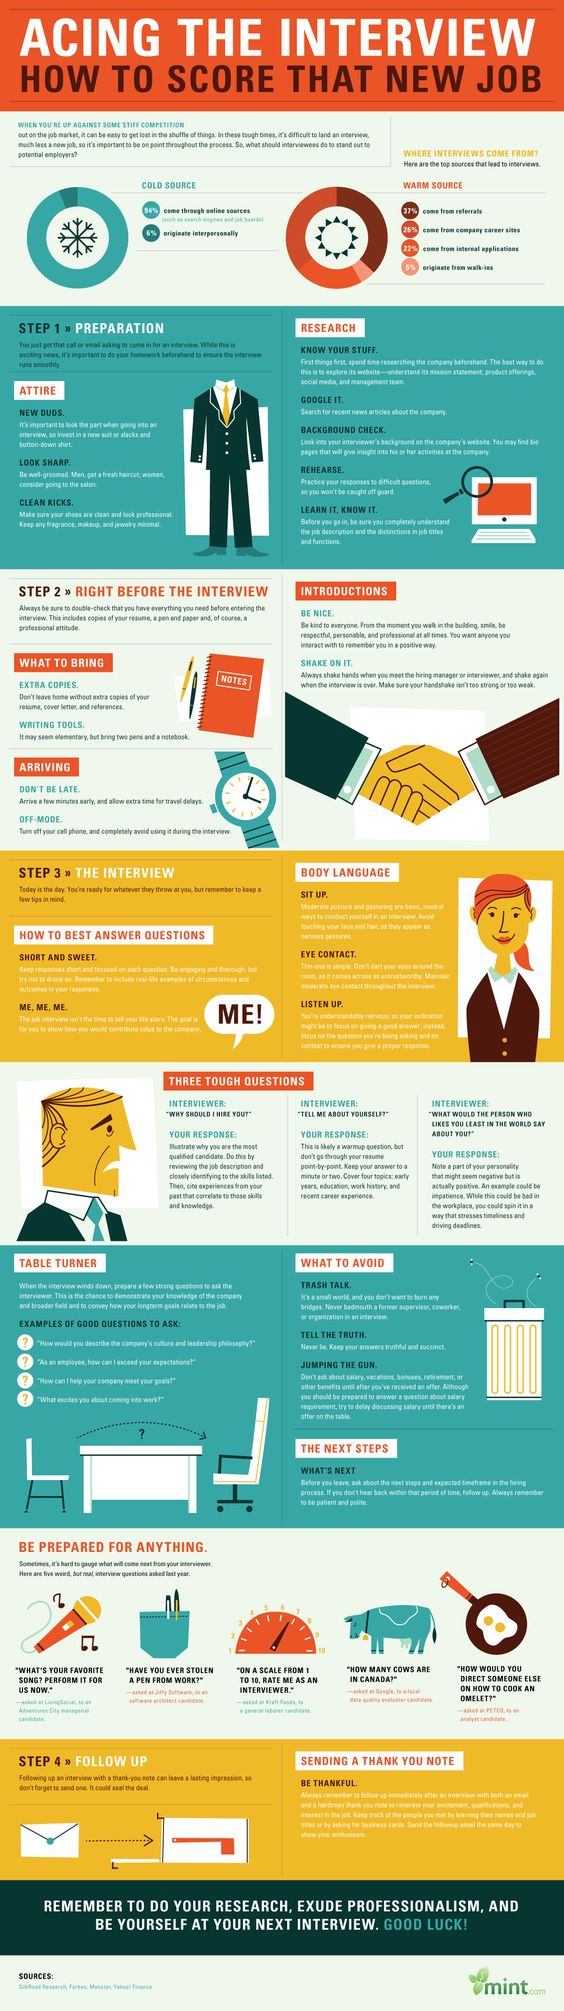 How to Ace the Interview and Secure Your Dream Job [INFOGRAPHIC] on http://theundercoverrecruiter.com